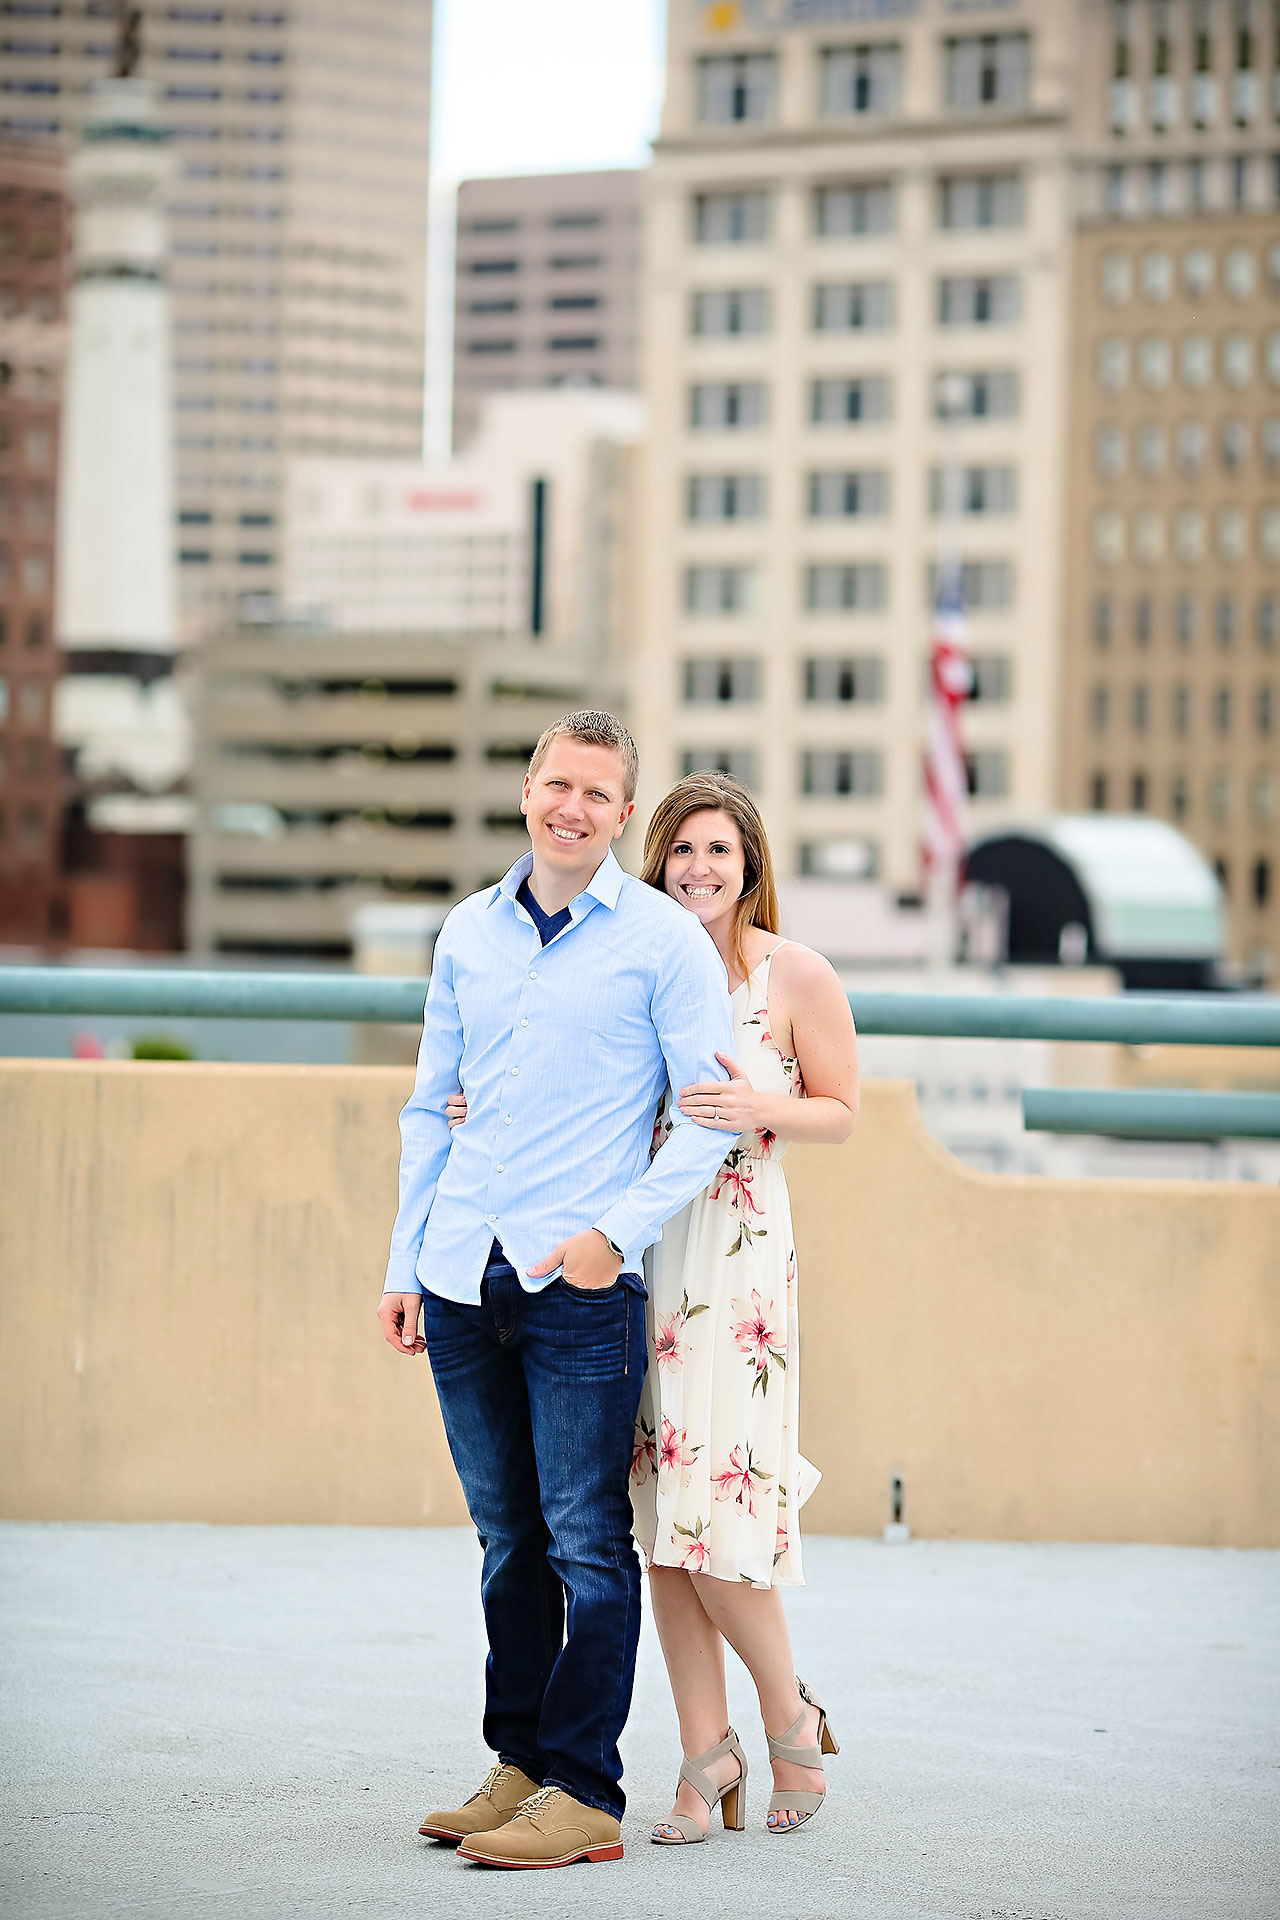 Chelsea Jeff Downtown Indy Engagement Session 141